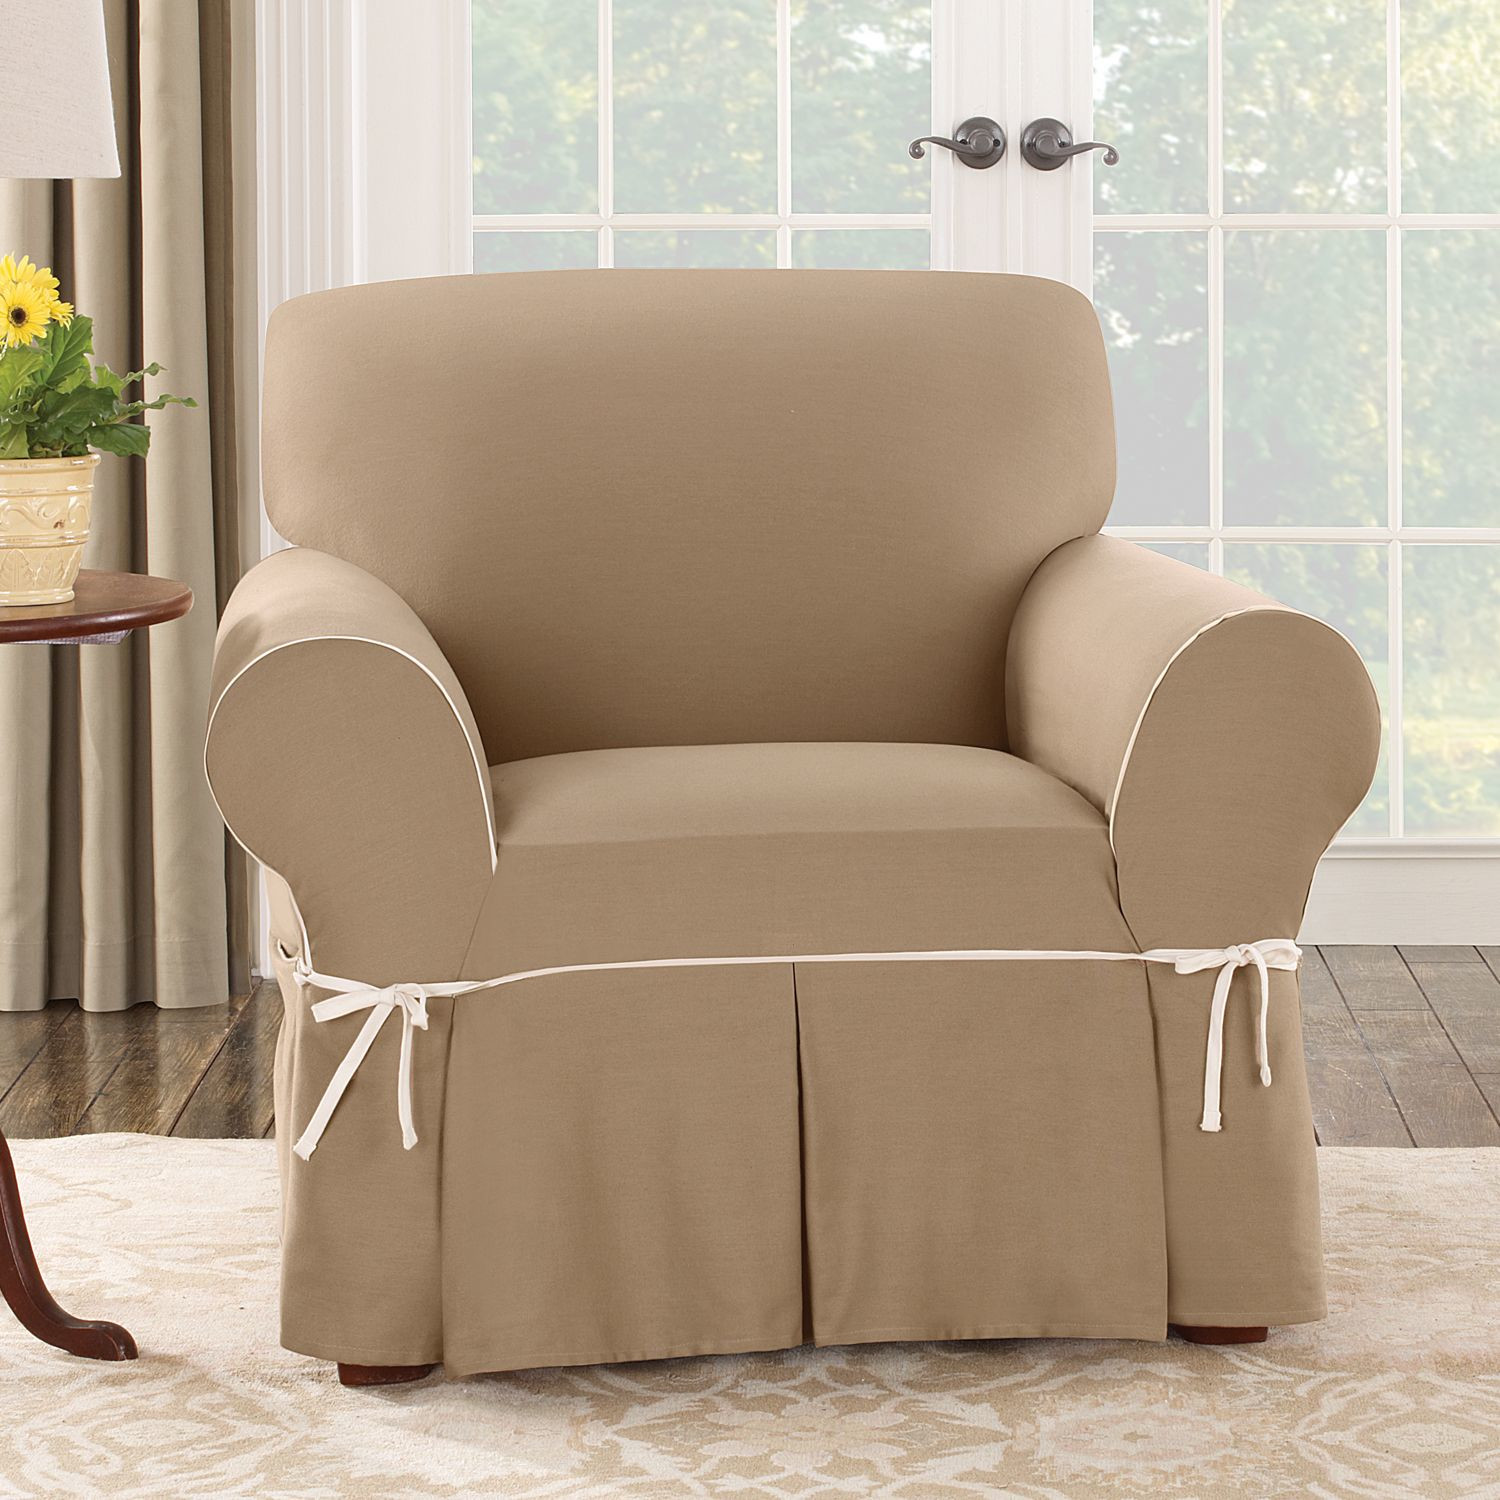 surefit chair slipcovers fit cotton barrel chair slipcovers